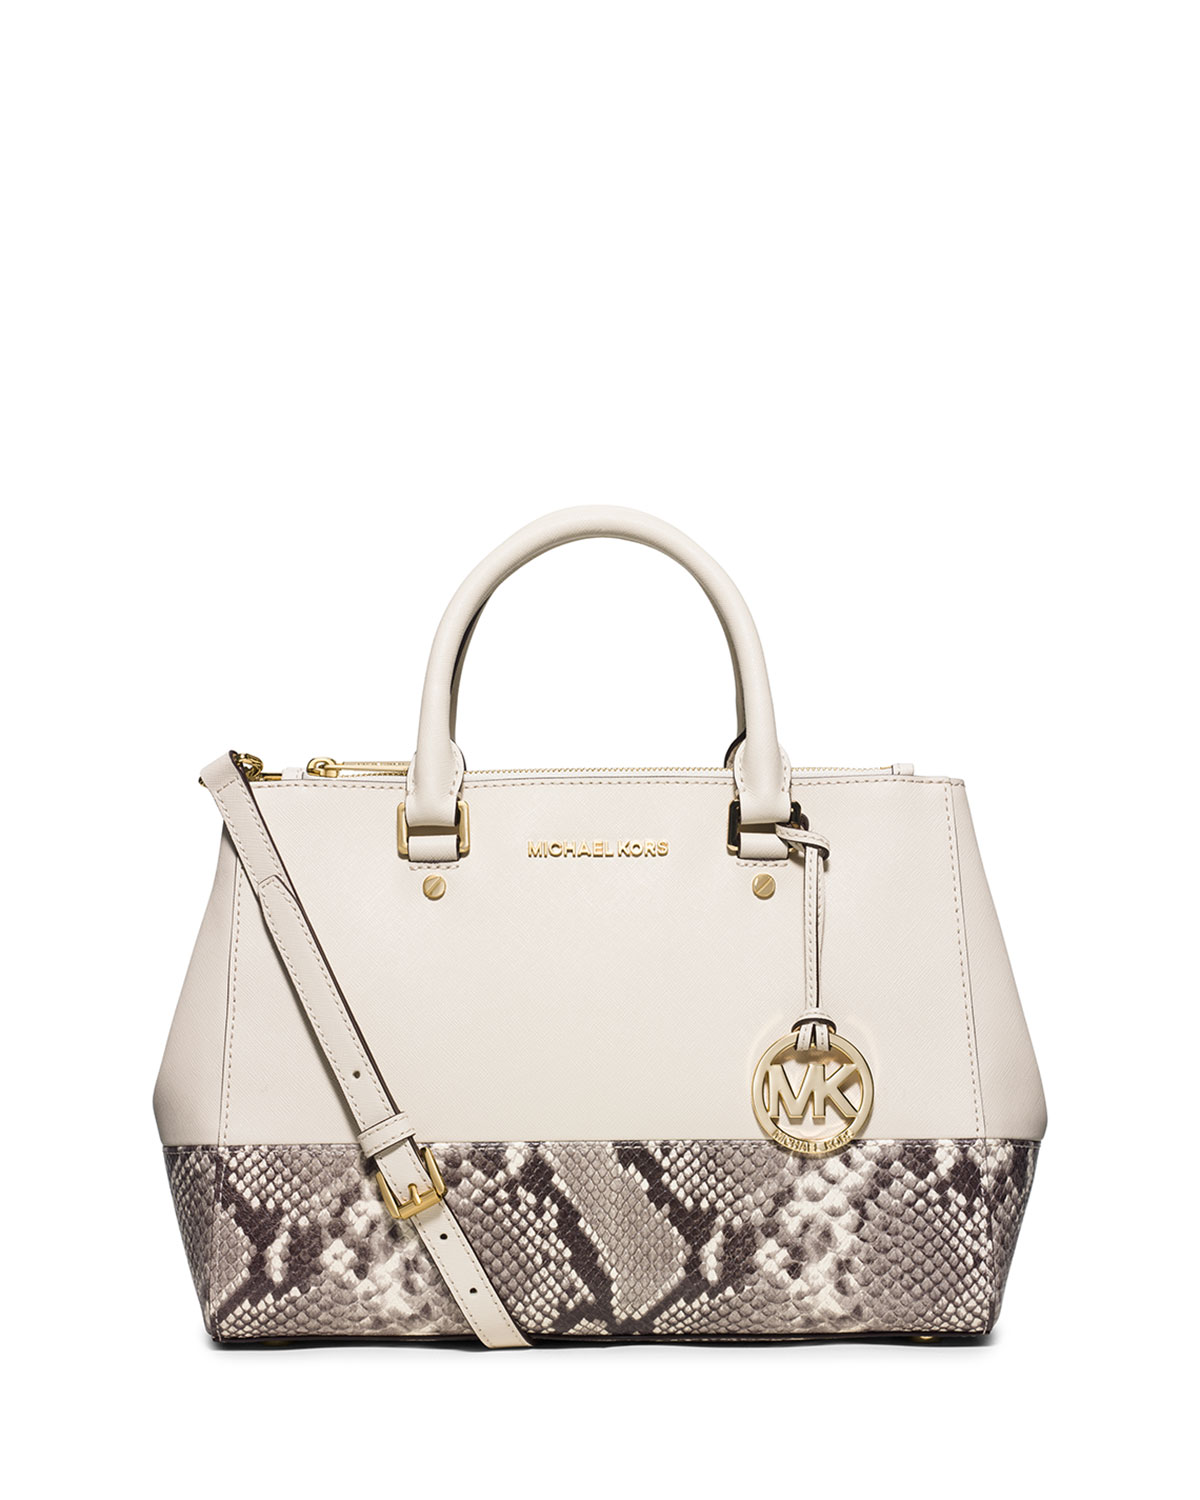 a752daa93763 MICHAEL Michael Kors Sutton Medium Satchel Bag, Ecru/Natural ...